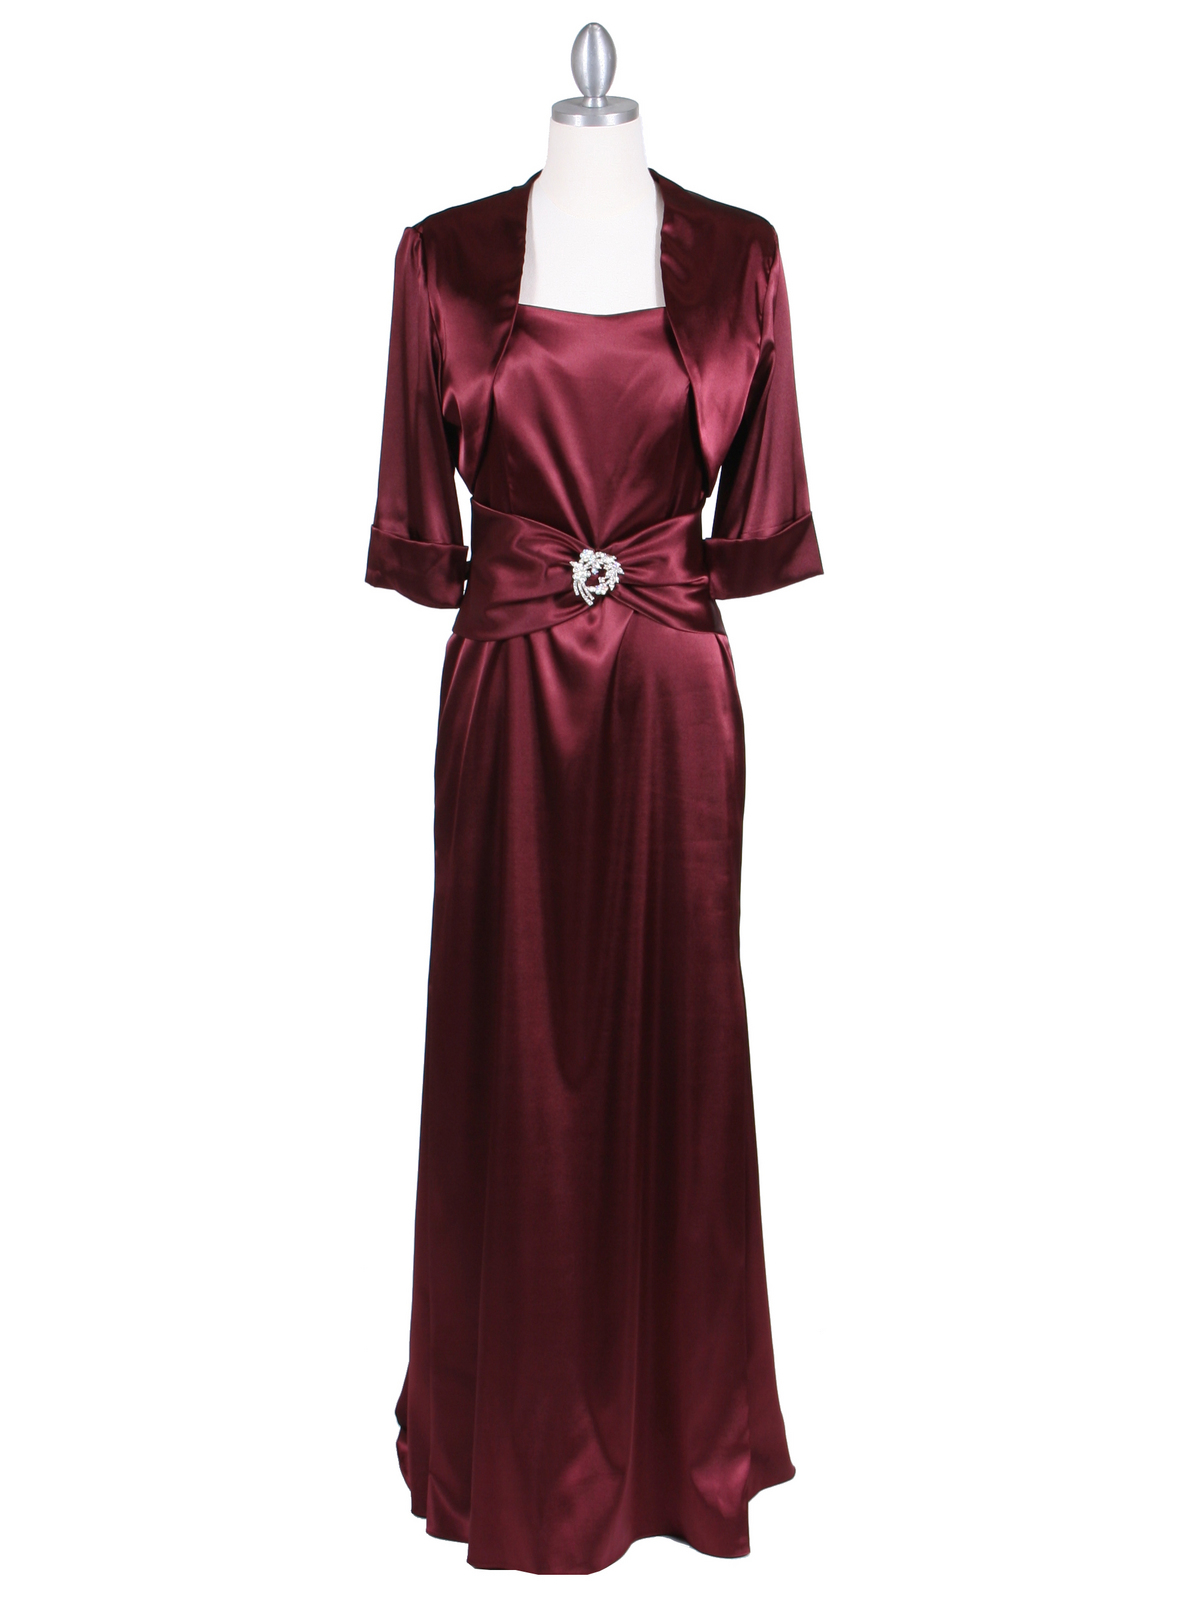 Wine Charmeuse Evening Dress With Bolero Jacket Sung Boutique L A